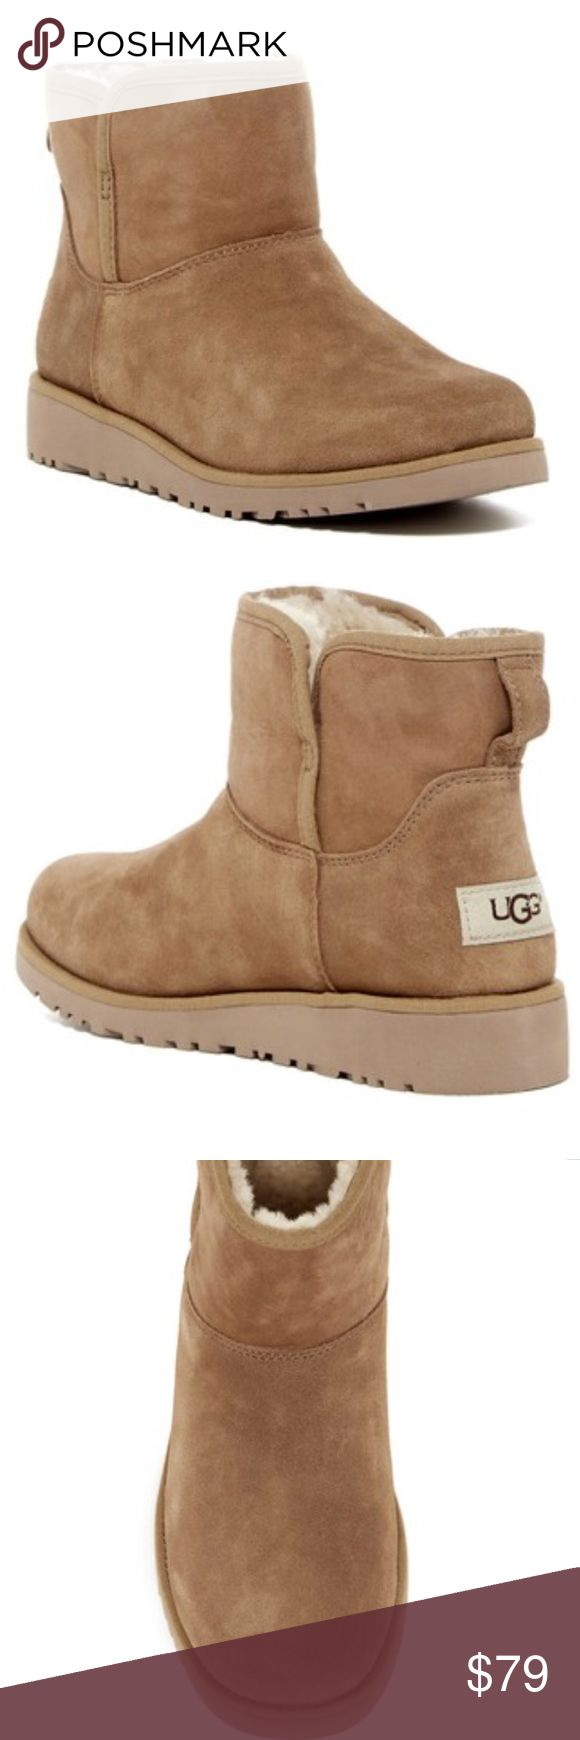 NWT ugg Australia katalina girls boots Sz 3 An adorable short boot is designed especially for a child's foot with water-resistant suede and a soft, cozy lining made from genuine shearling so her feet can stay warm when the temperature drops.  Water resistant  - Round toe  - Suede construction  - Topstitched detail  - Pull-on  - Back pull-tab  - UGGpure lined footbed  - Genuine shearling lining UGG Shoes Boots